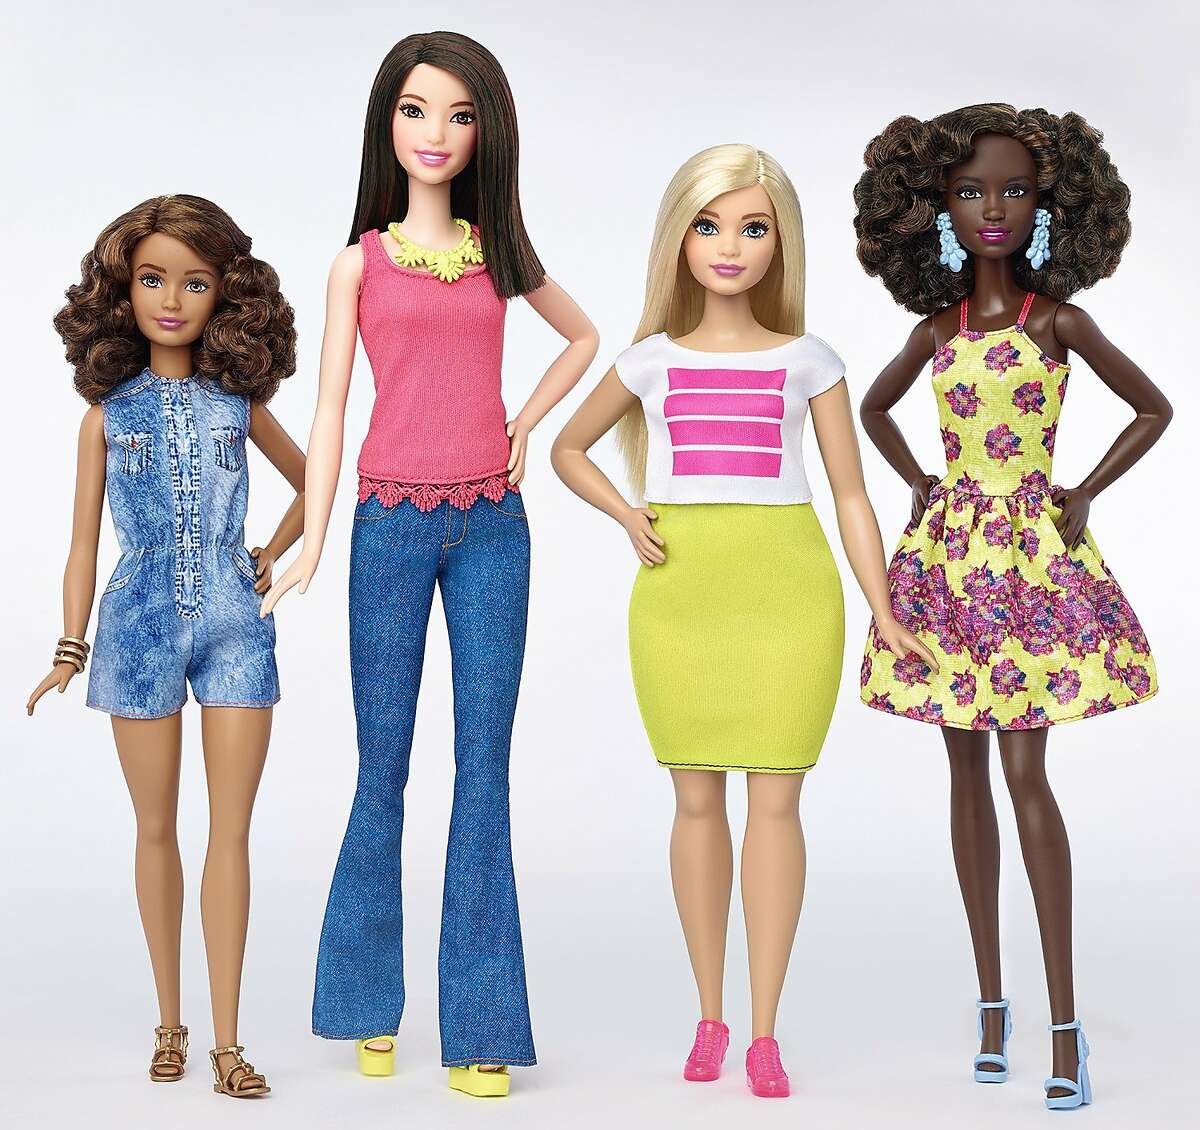 FILE - This file photo provided by Mattel shows a group of new Barbie dolls introduced in January 2016. Mattel reports financial results Monday, Feb. 1, 2016. (Mattel via AP, File)